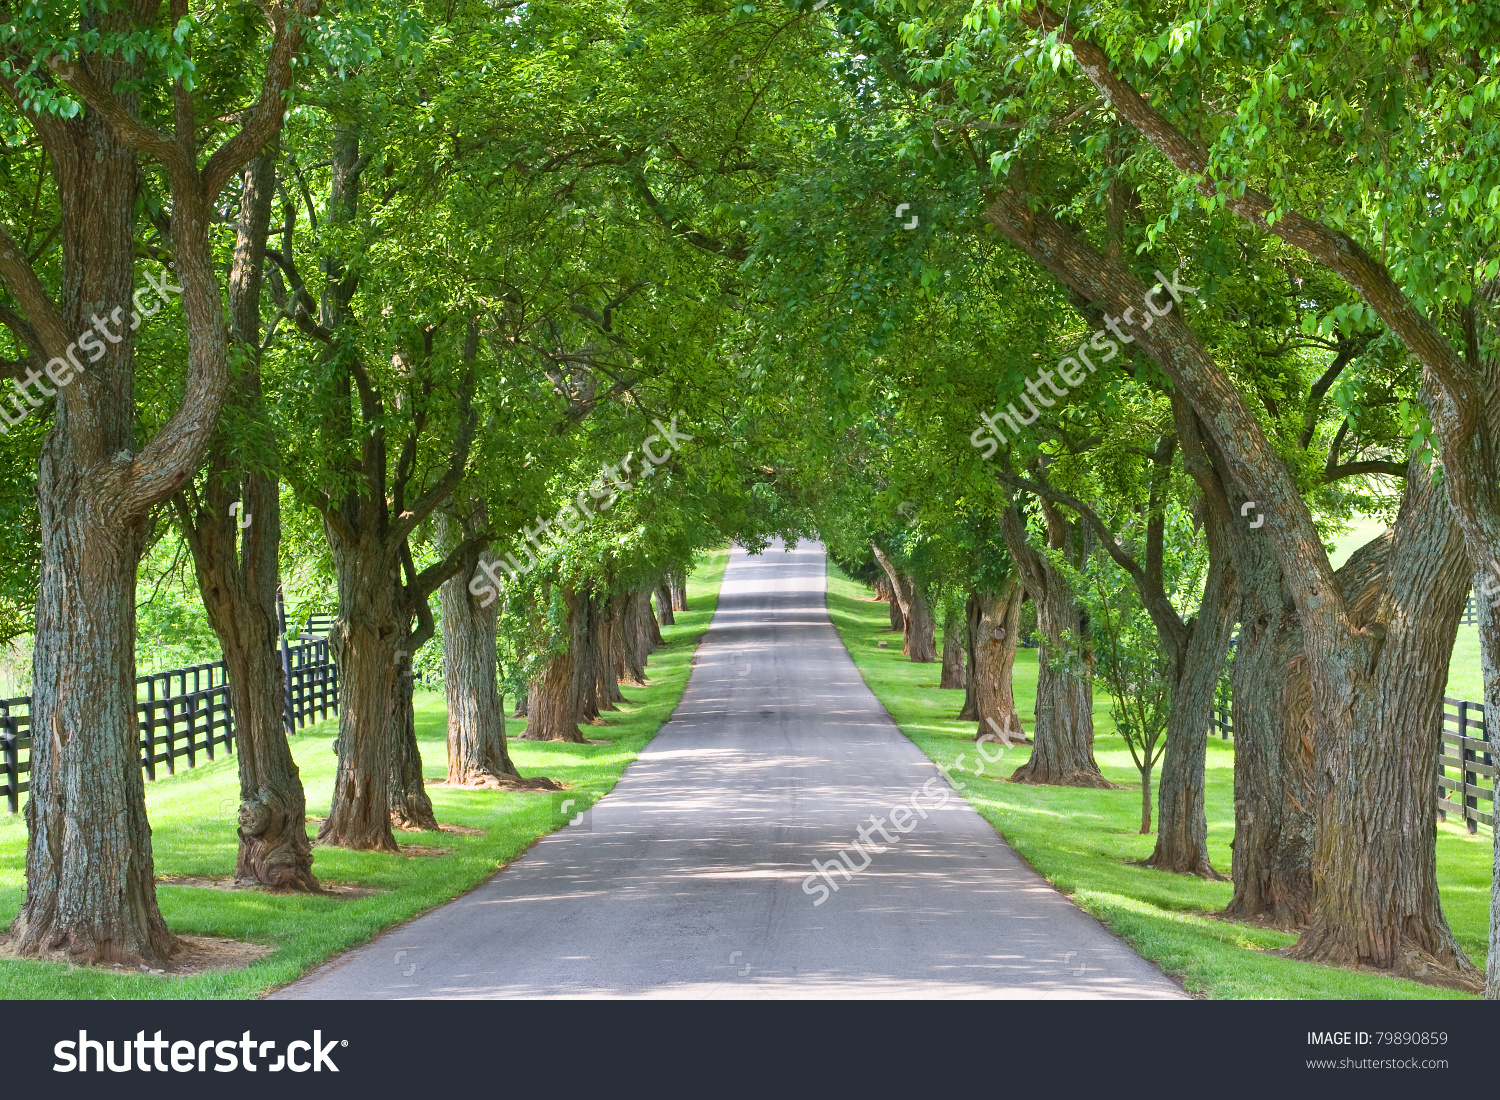 Tree Lined Road Stock Photo 79890859.